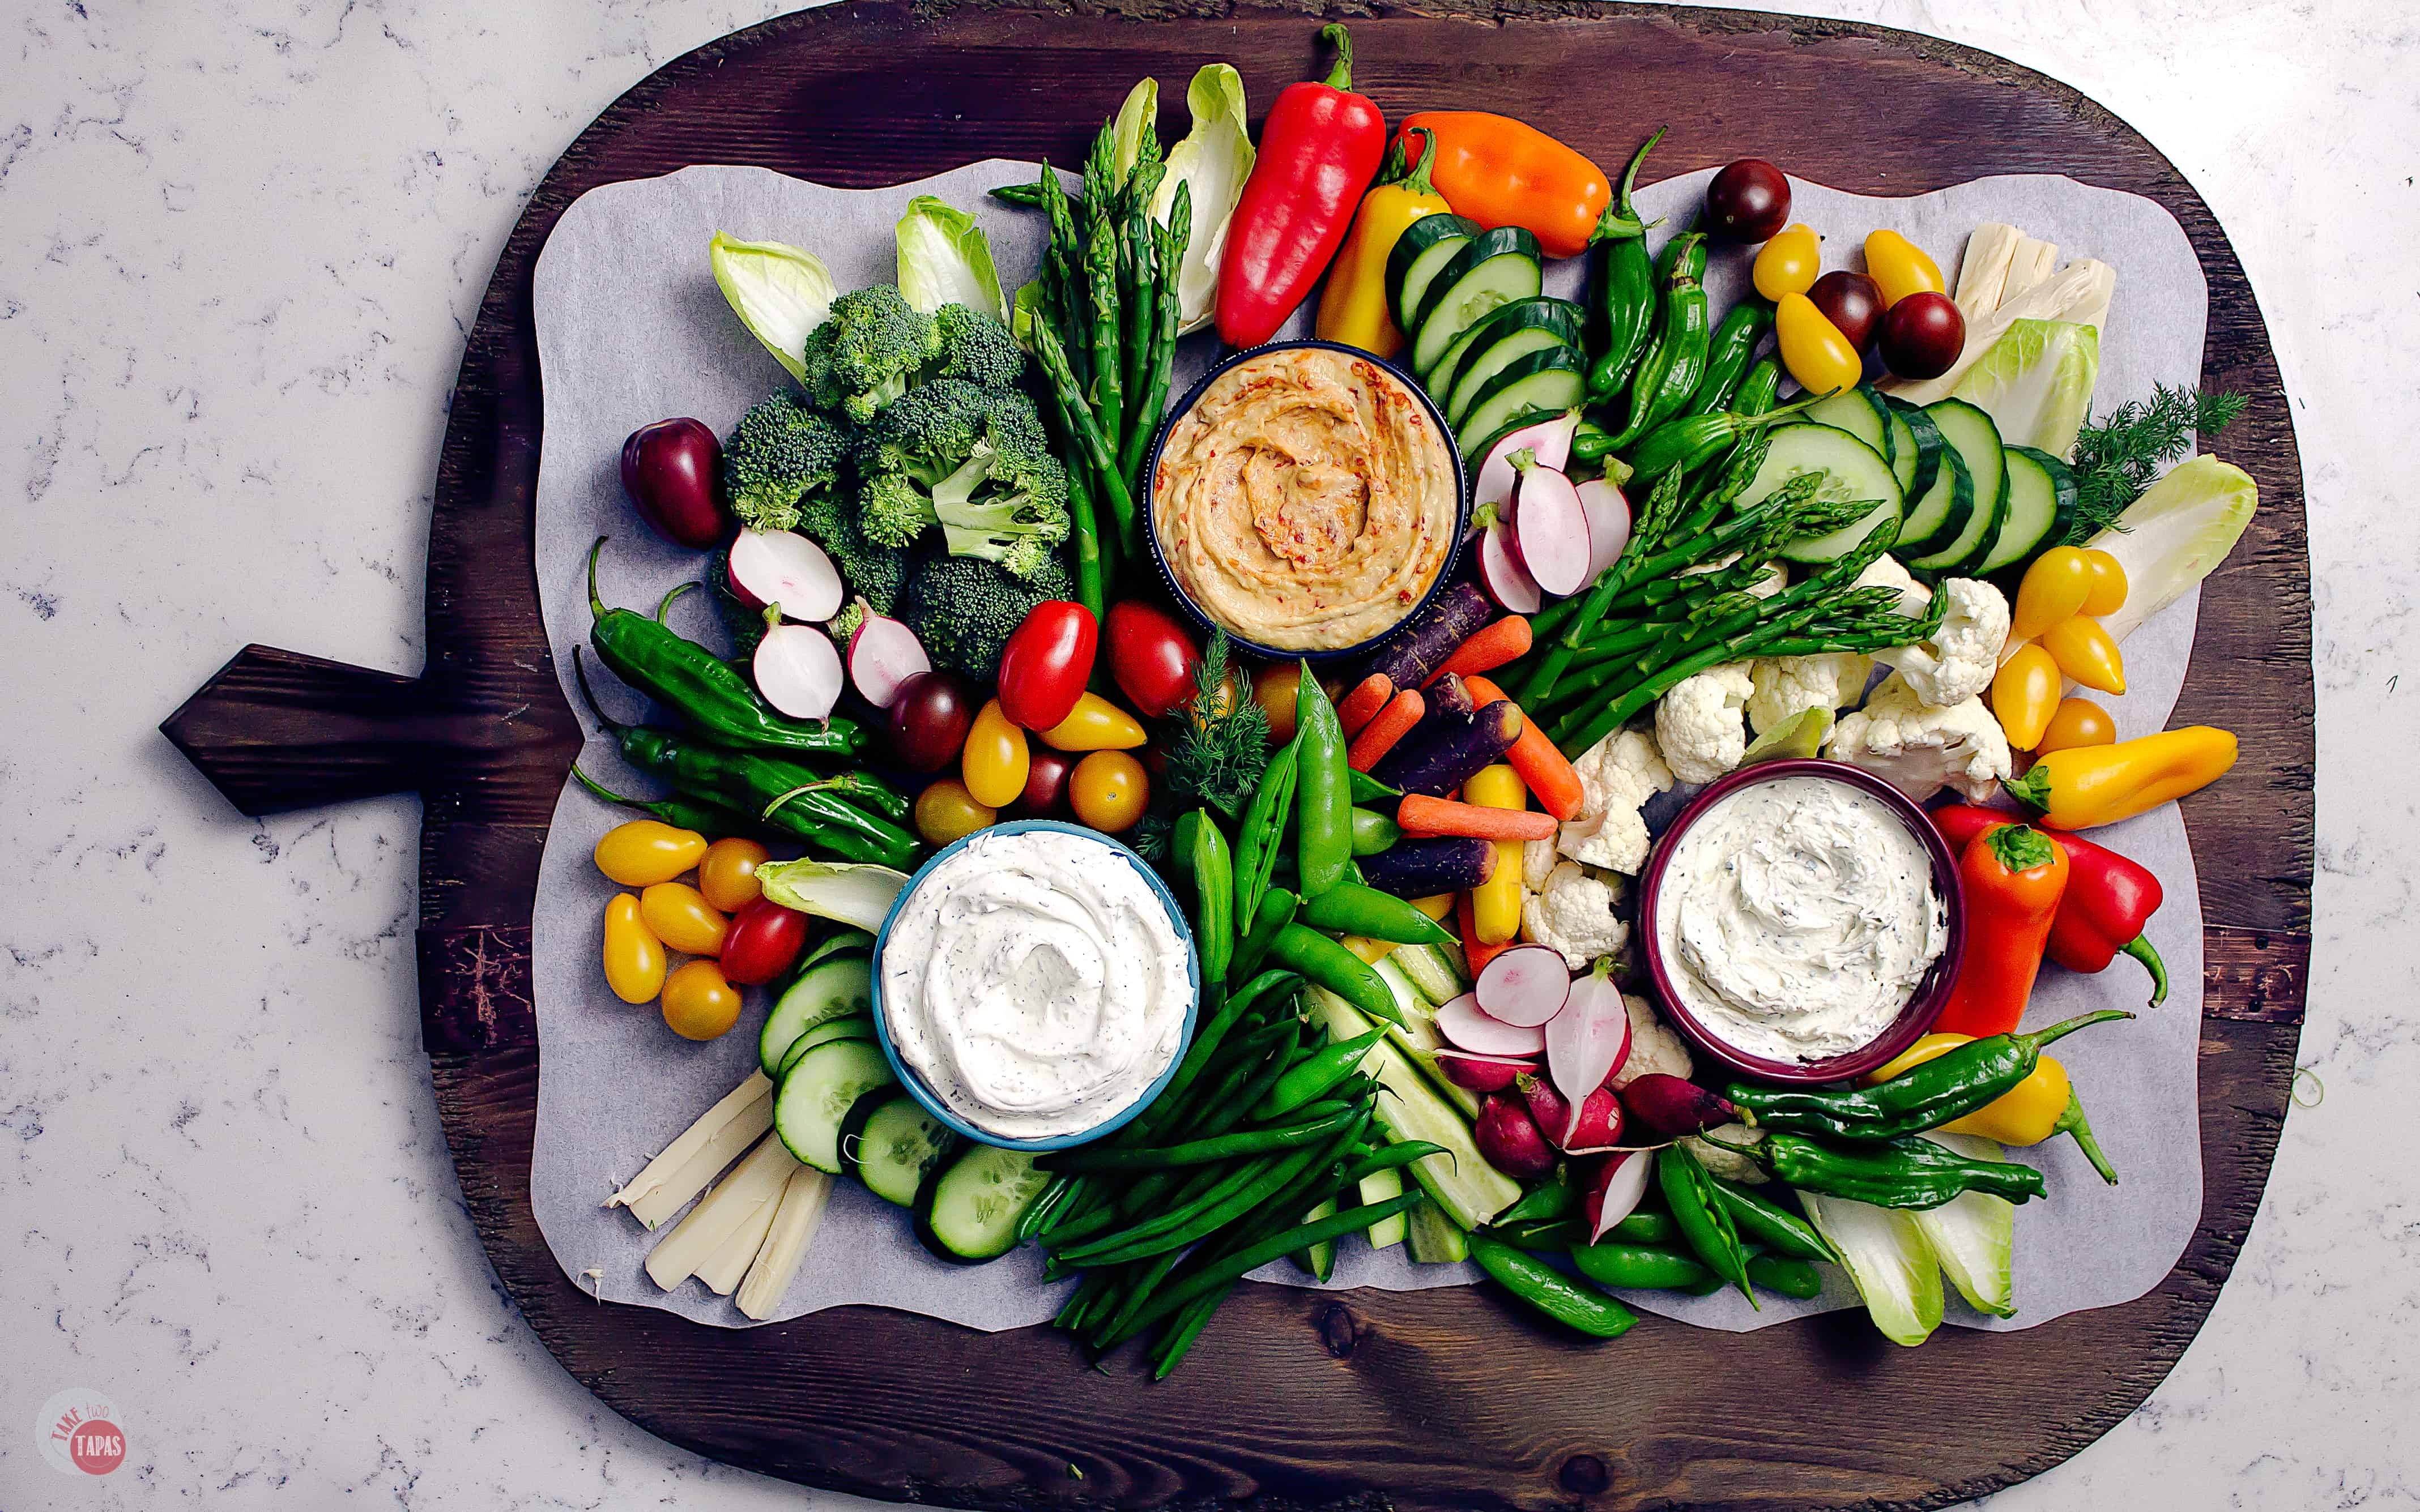 an overhead view of a vegetable platter